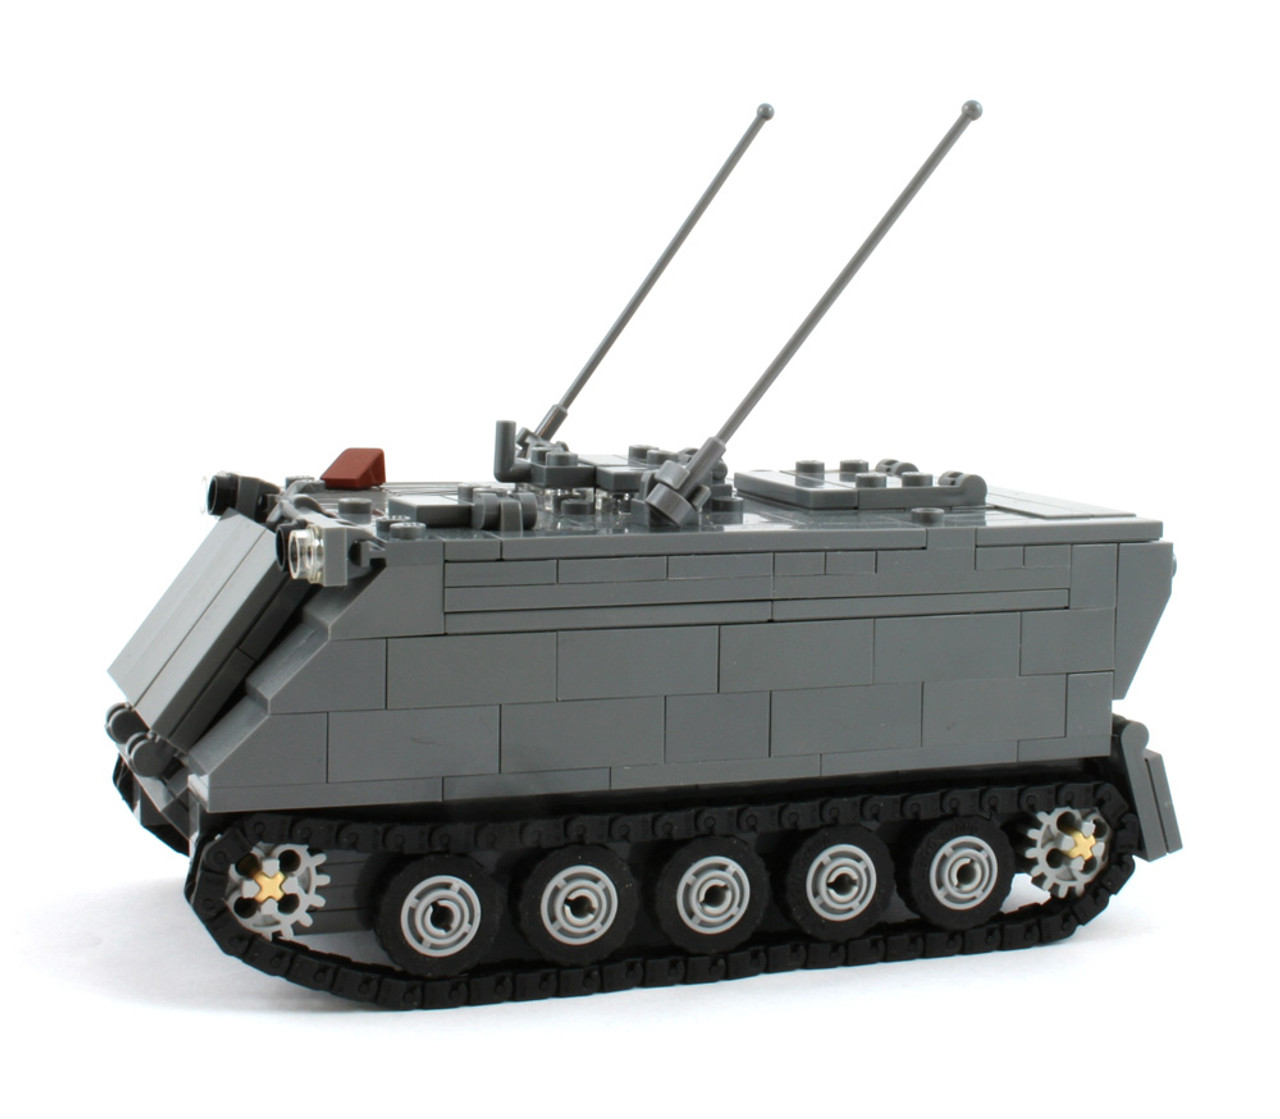 M113 APC (Armored Personnel Carrier)